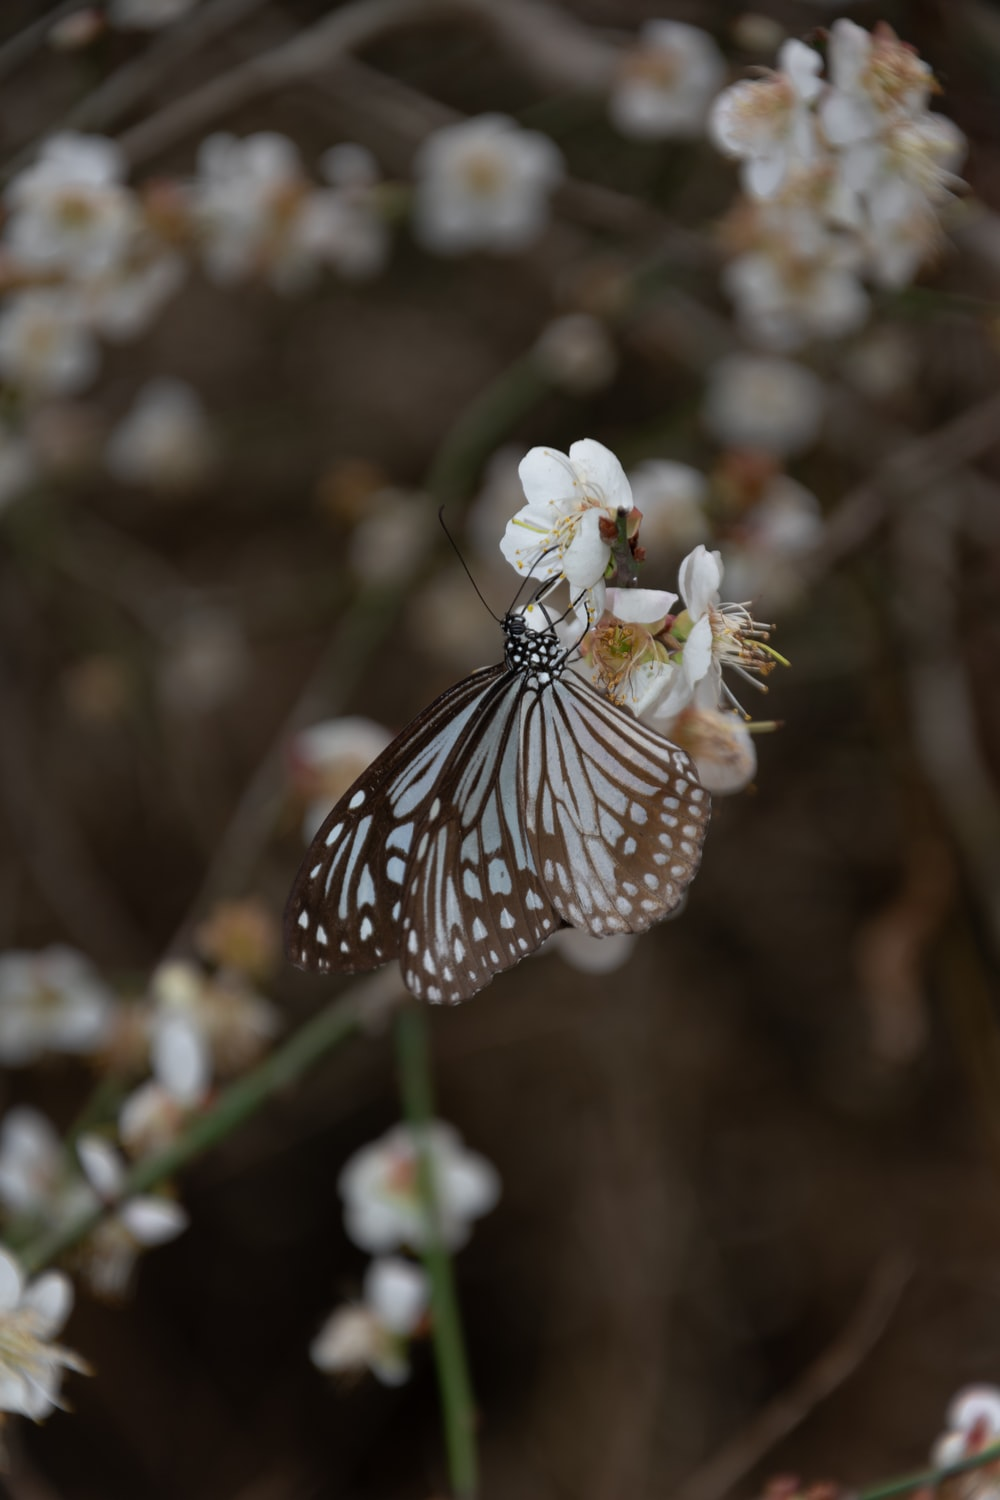 white and black butterfly perched on white flower in close up photography during daytime